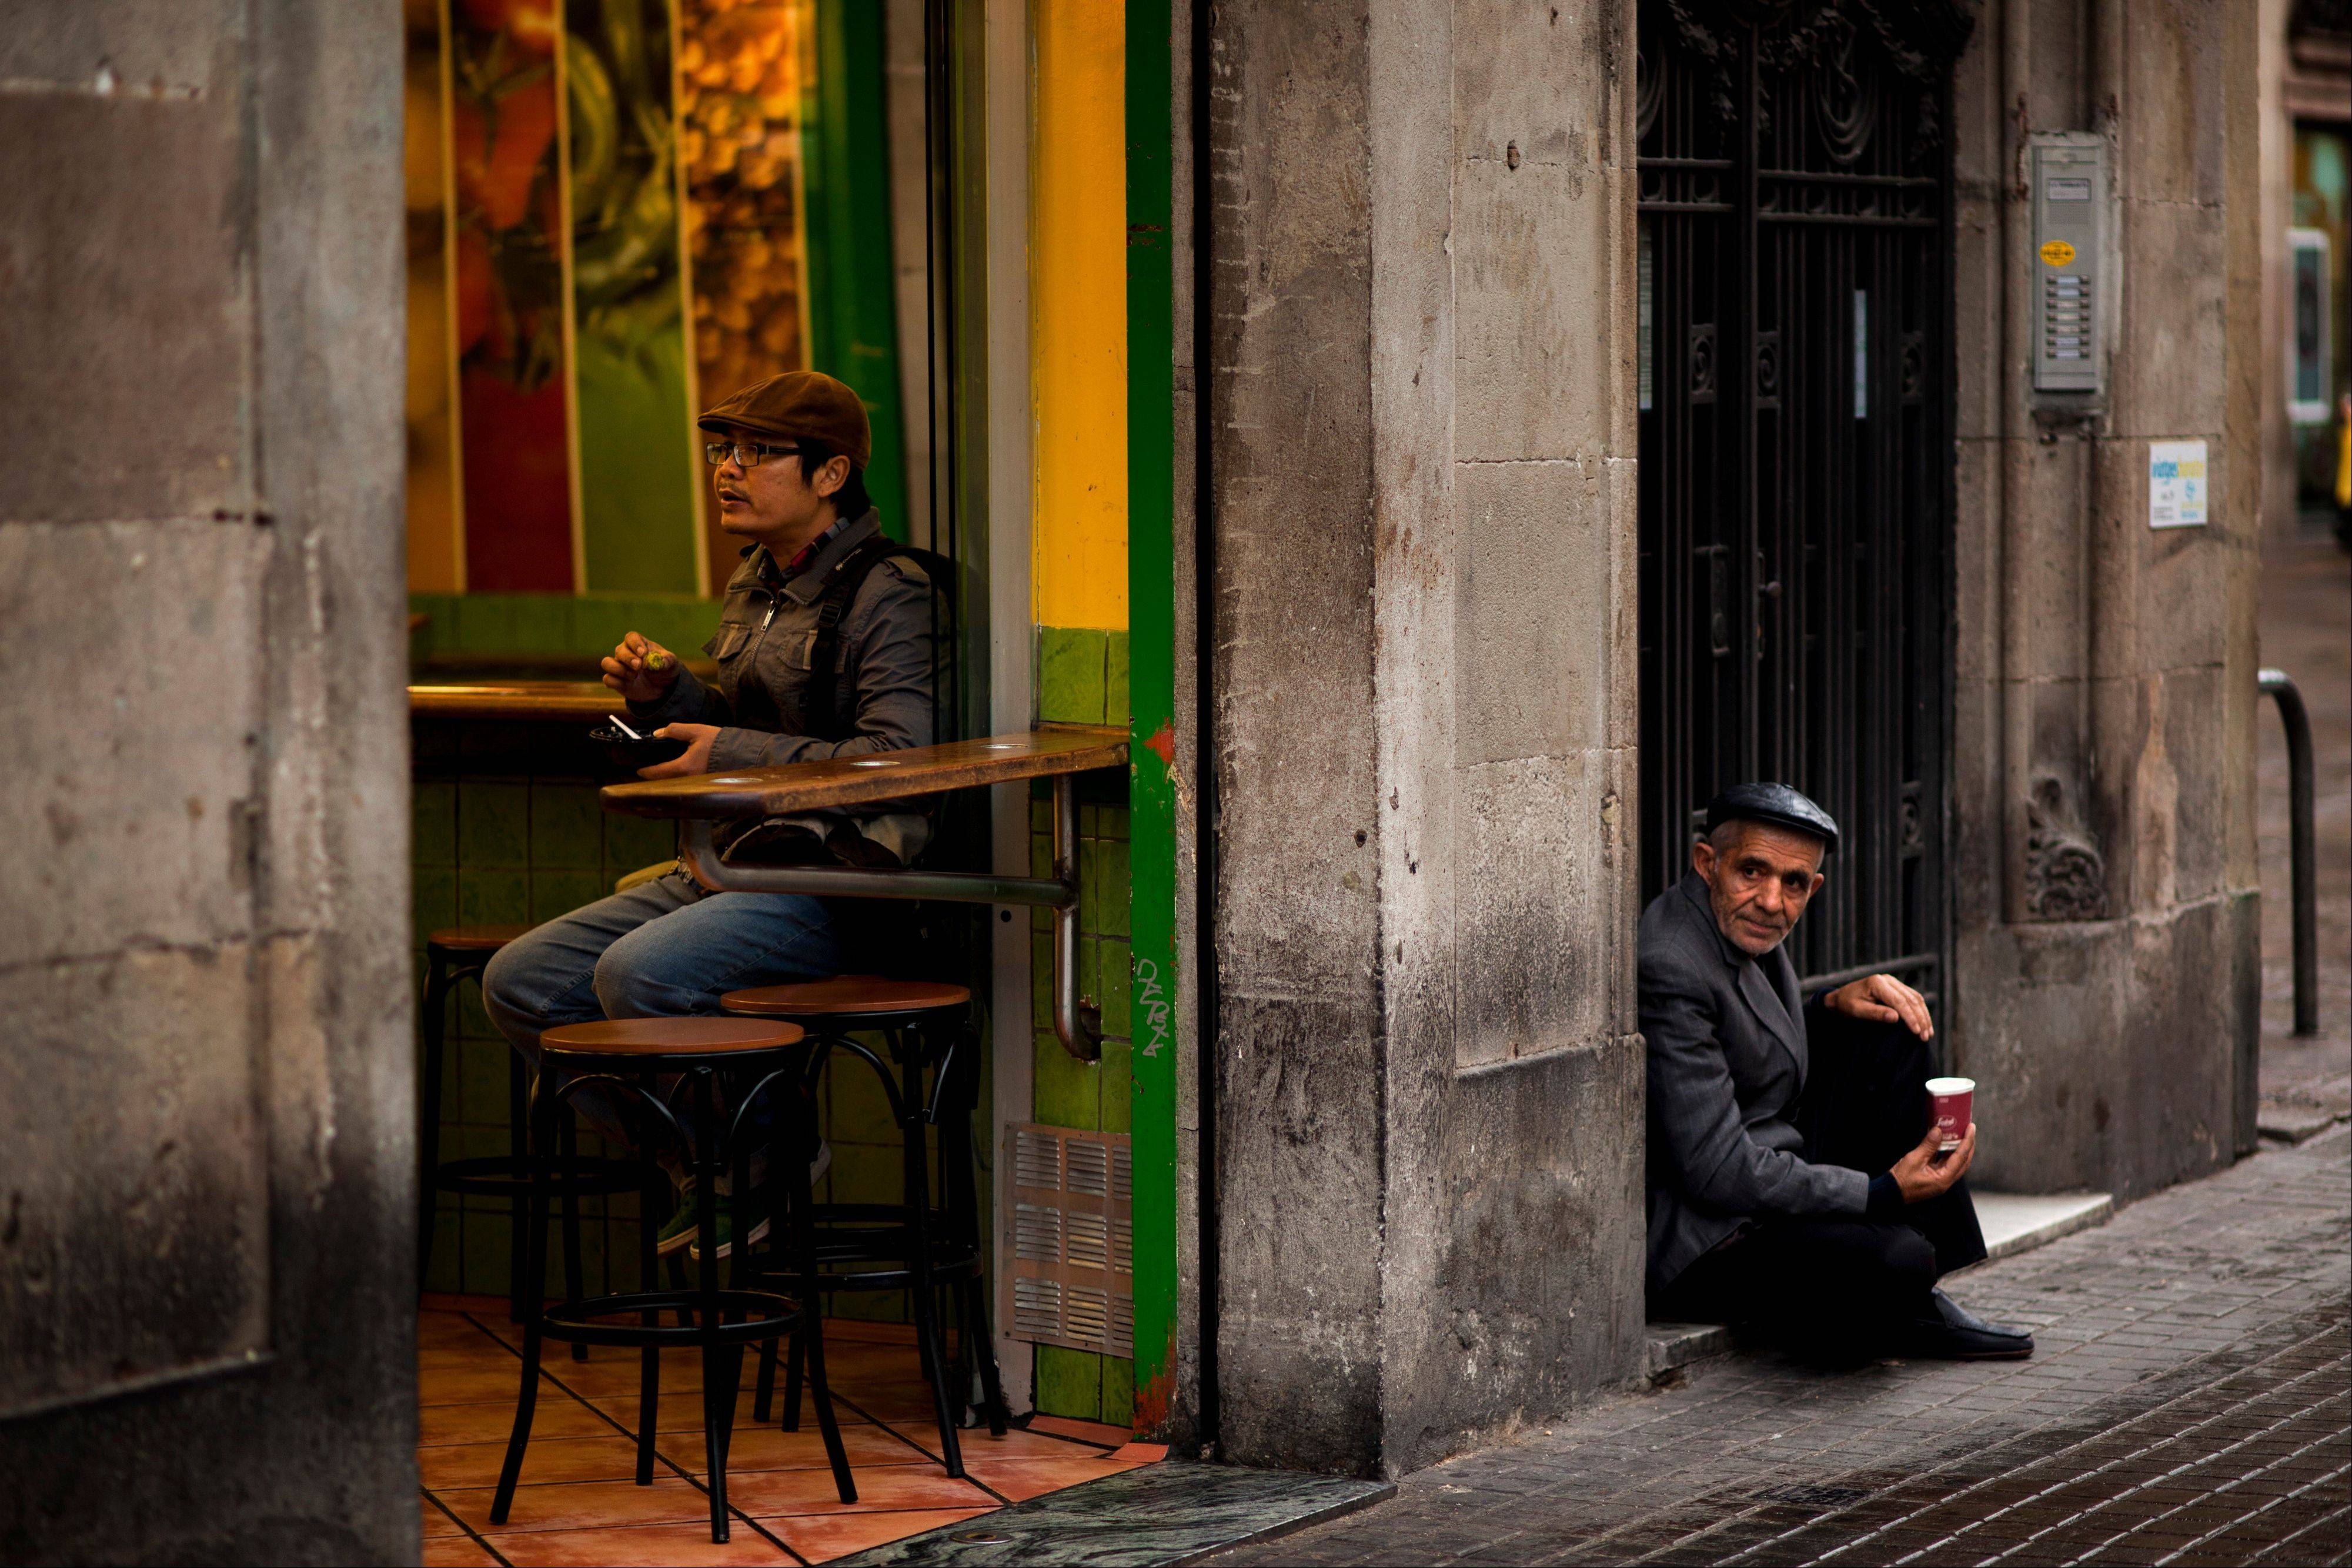 Atourist eats inside a restaurant as a man begs in the street in Barcelona, Spain. Spain�s Red Cross is launching its first-ever public appeal for donations to help the growing number Spaniards in need of help because of the economic crisis.